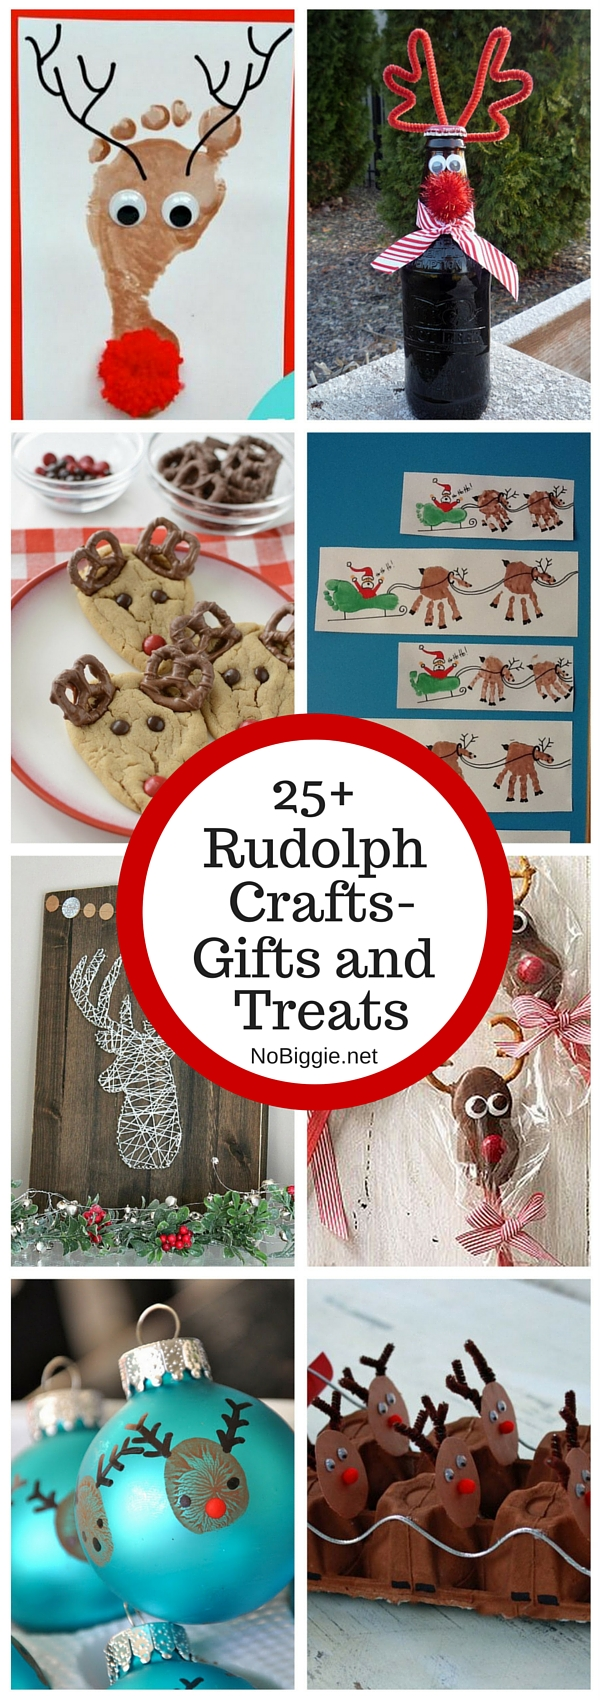 25+ Reindeer and Rudolph crafts, gifts and treats | NoBiggie.net